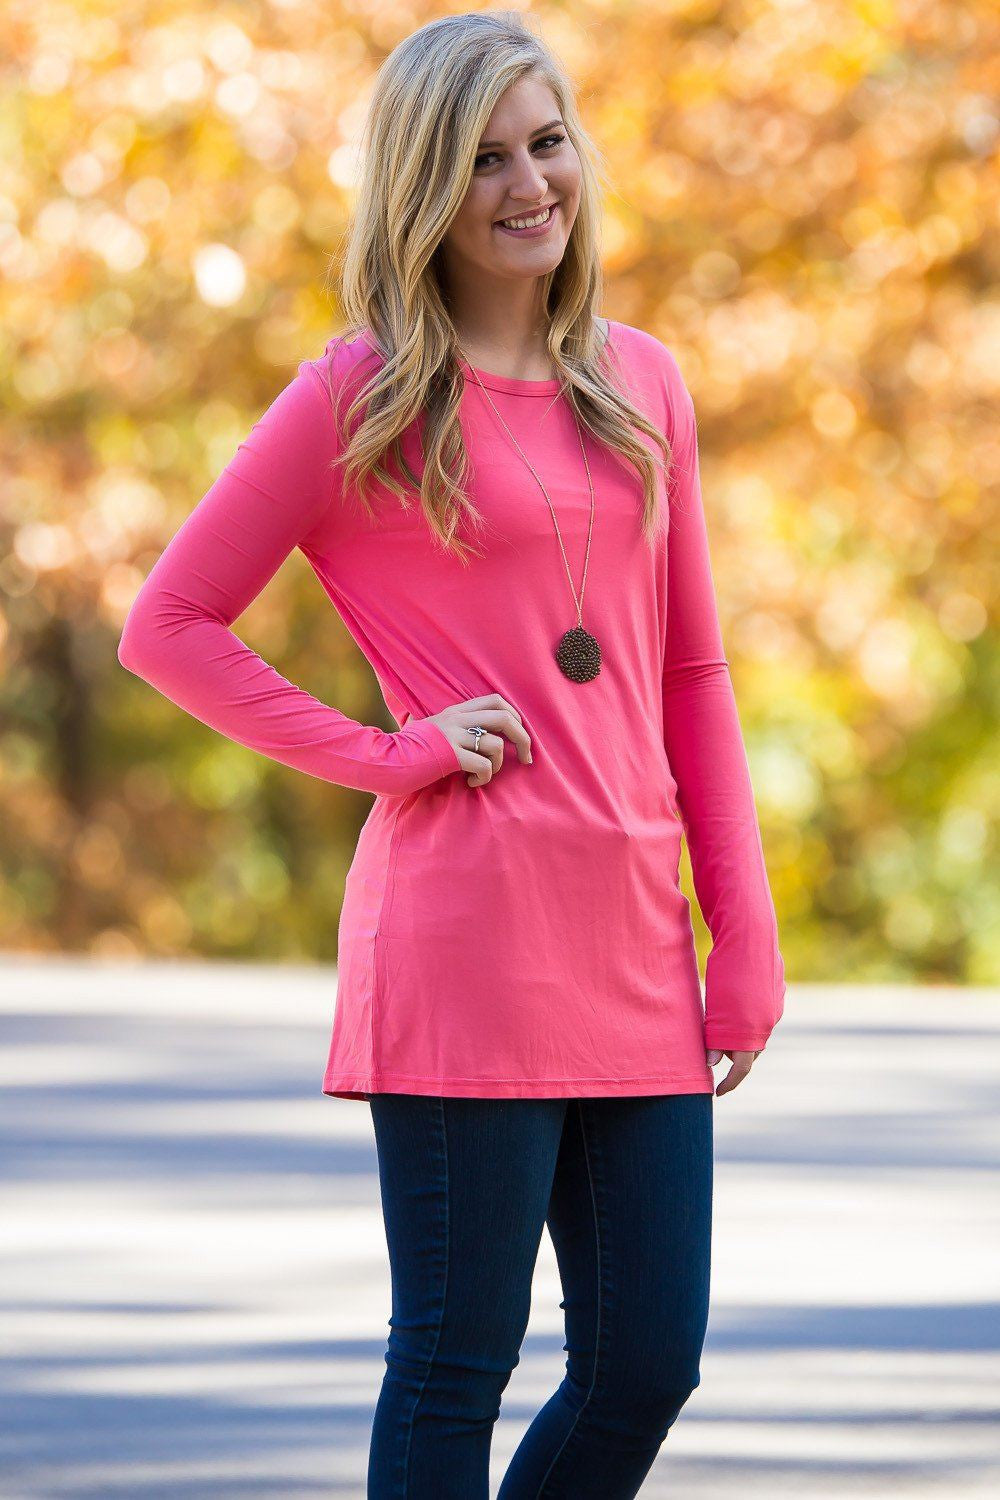 Long Sleeve Slim Fit Piko Top - Coral - Piko Clothing